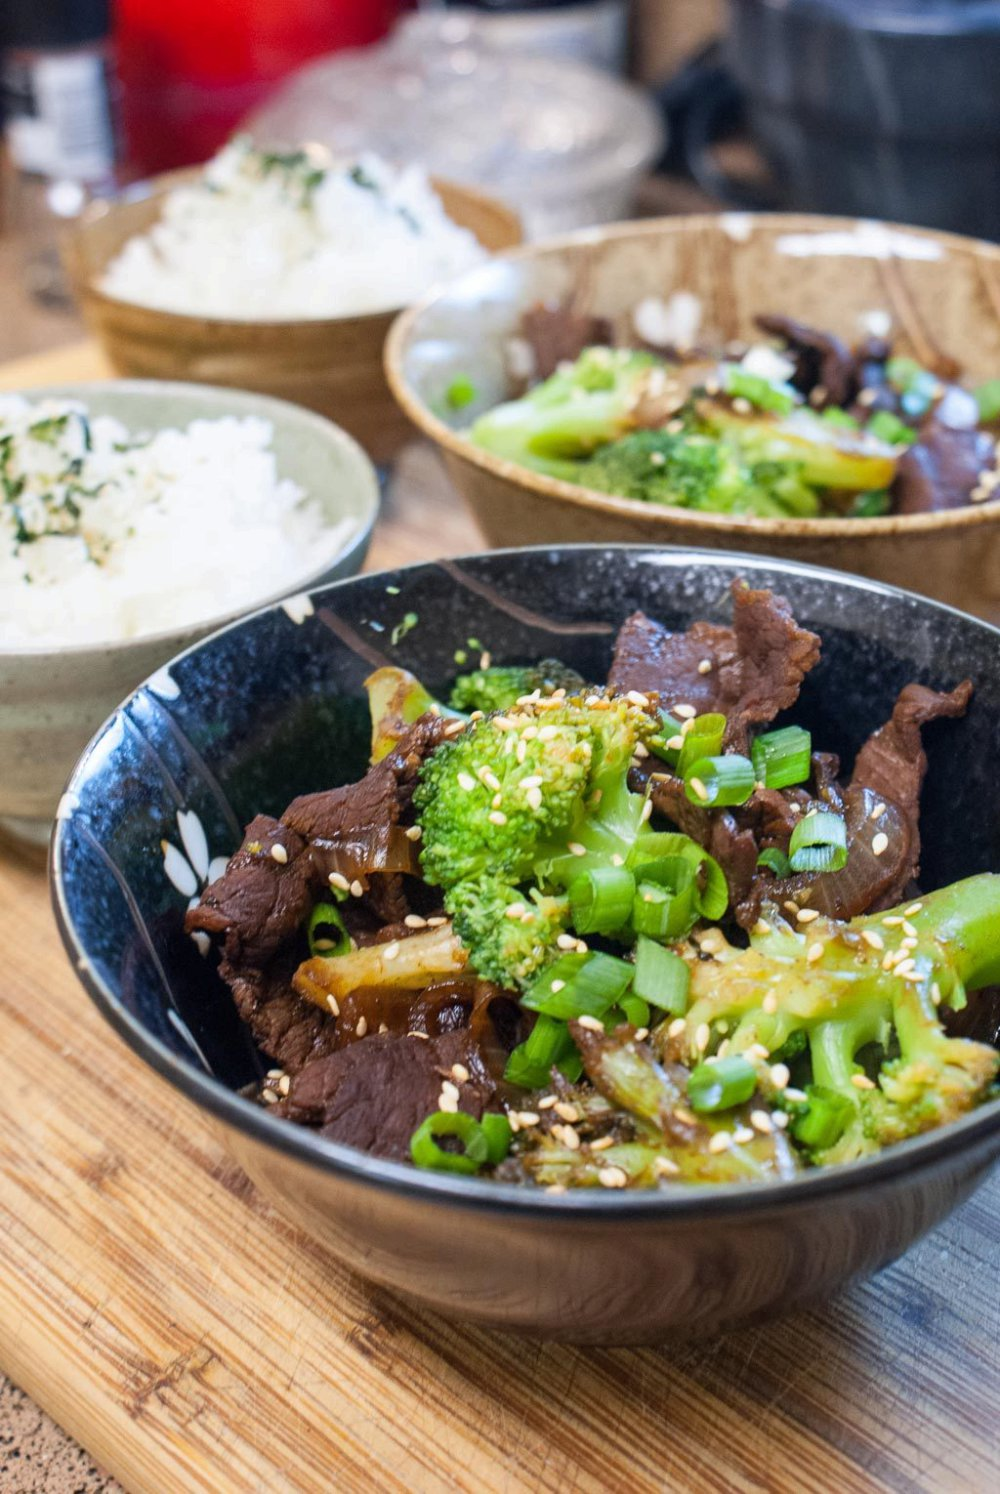 Broccoli Beef - A Japanese Twist on a Chinese Takeout Classic